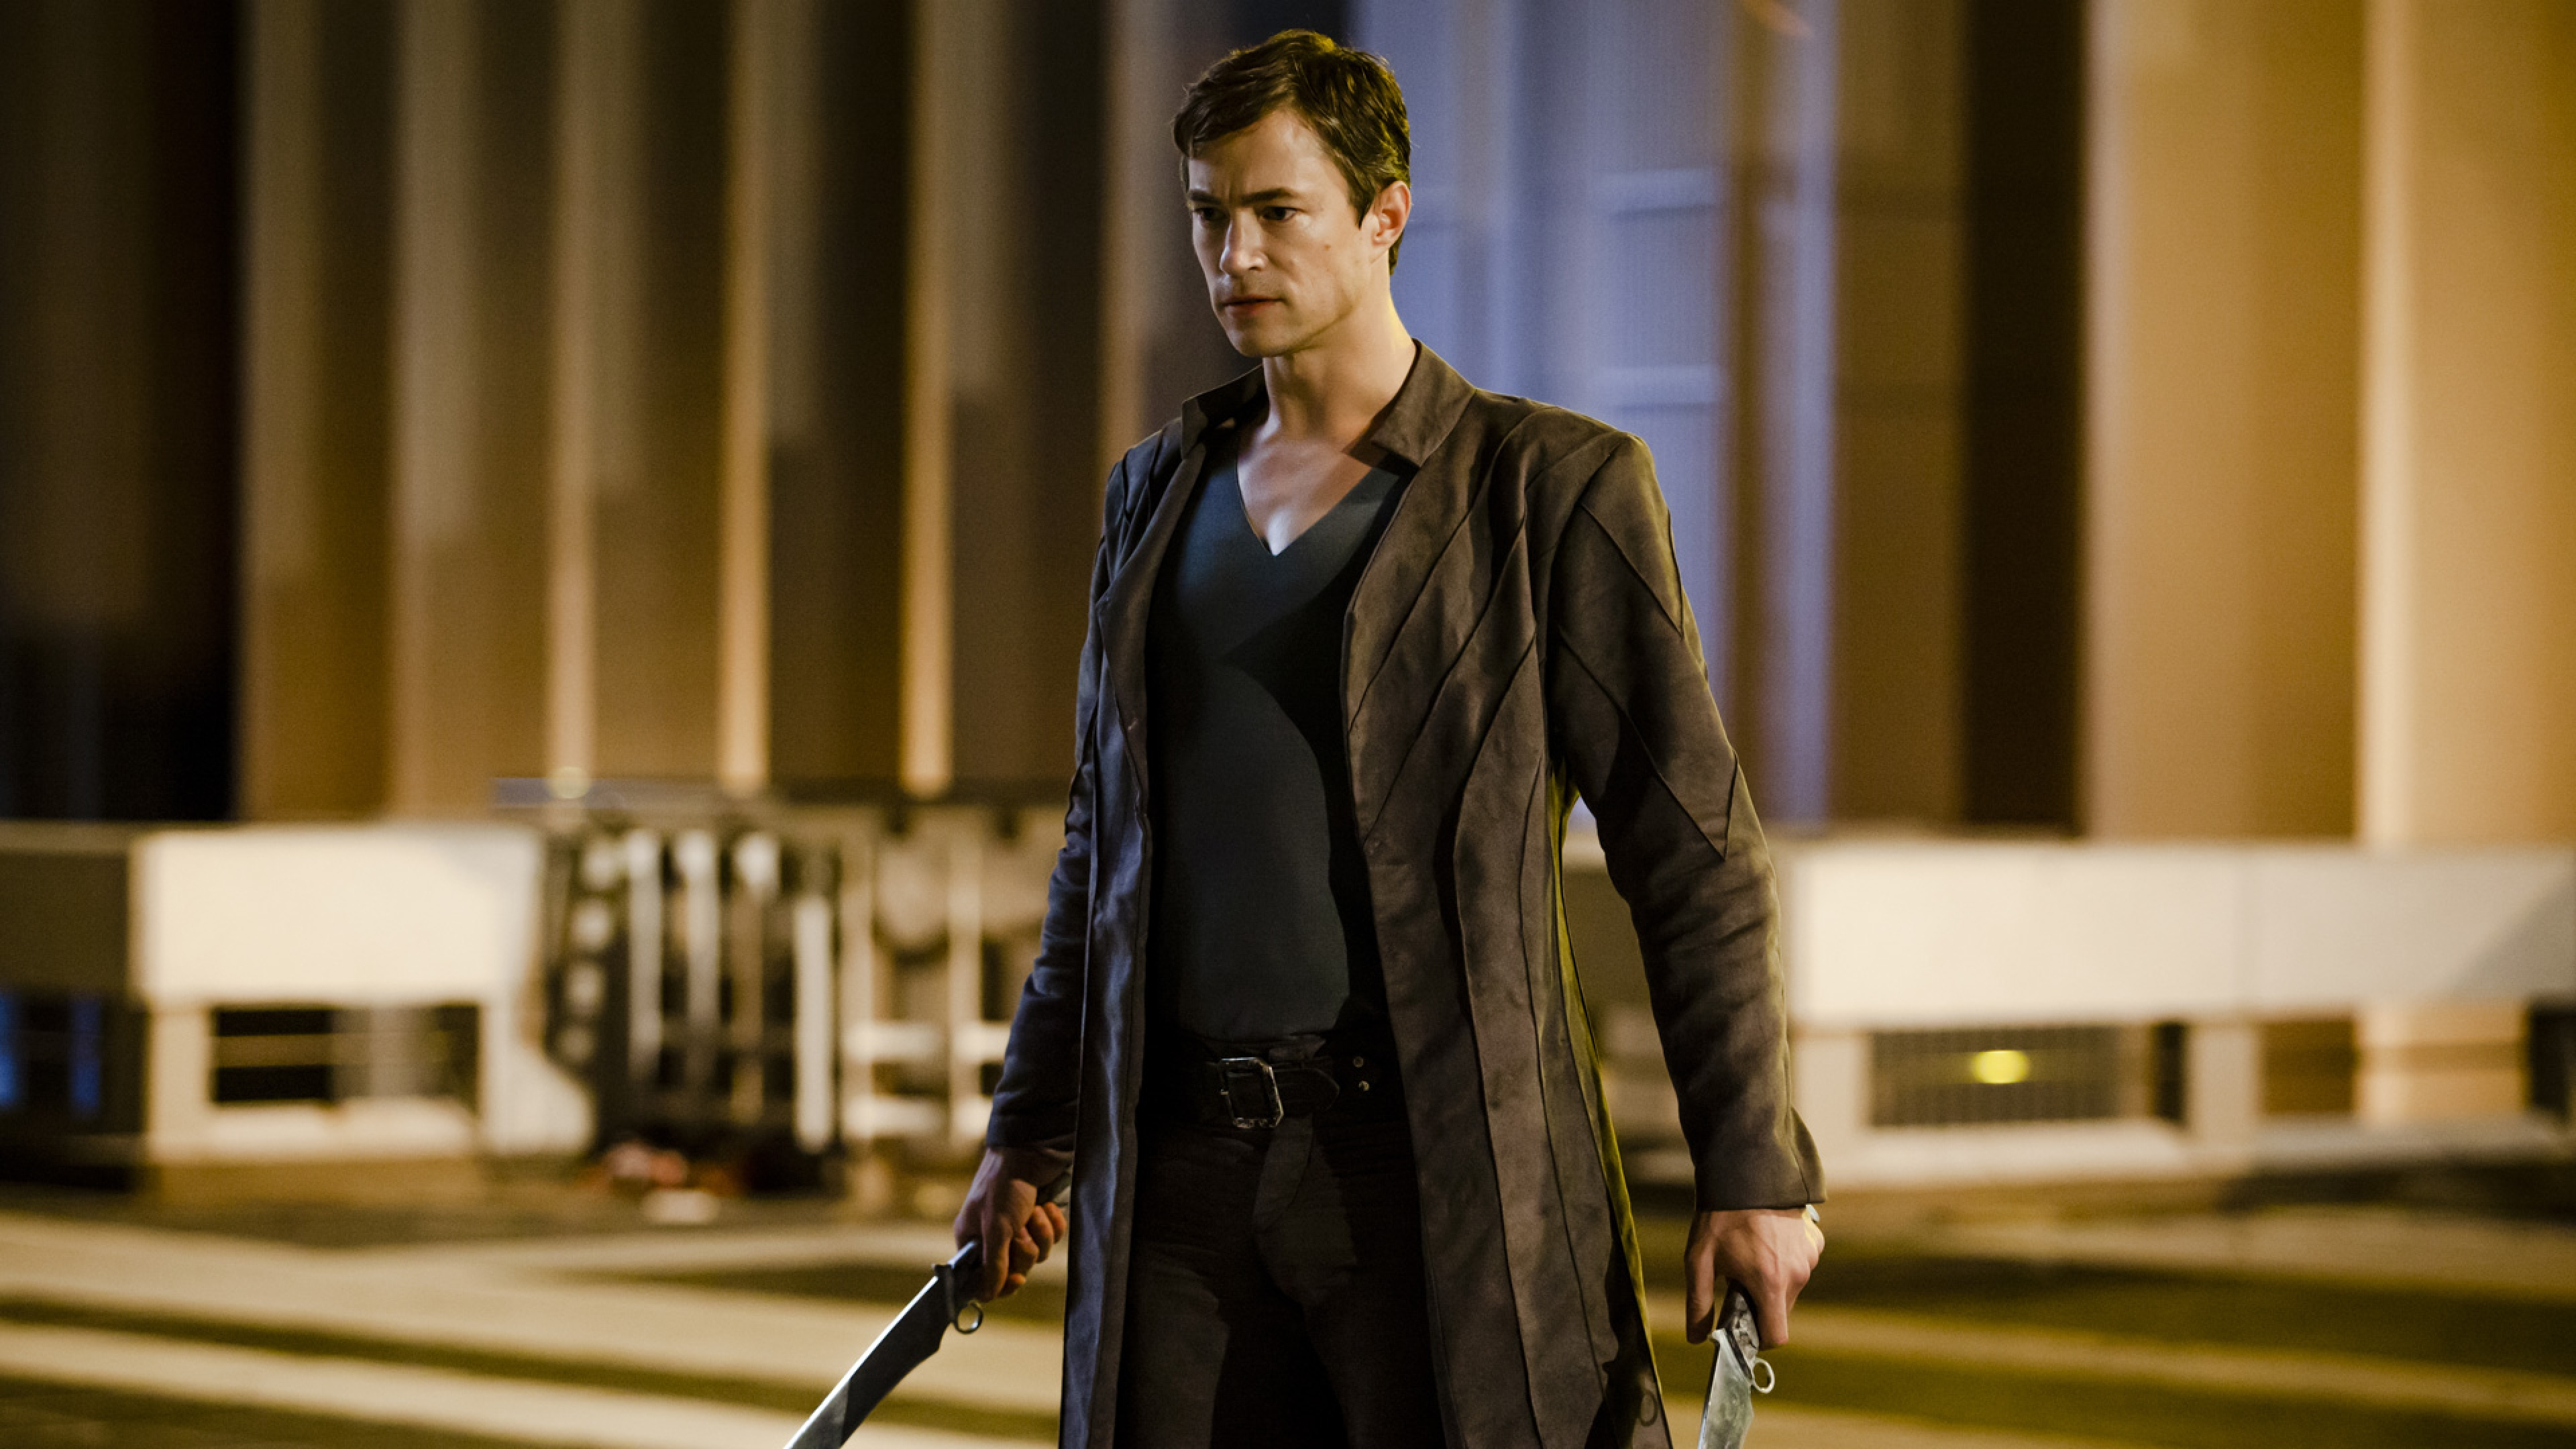 tom wisdom widescreen hd wallpaper 61566